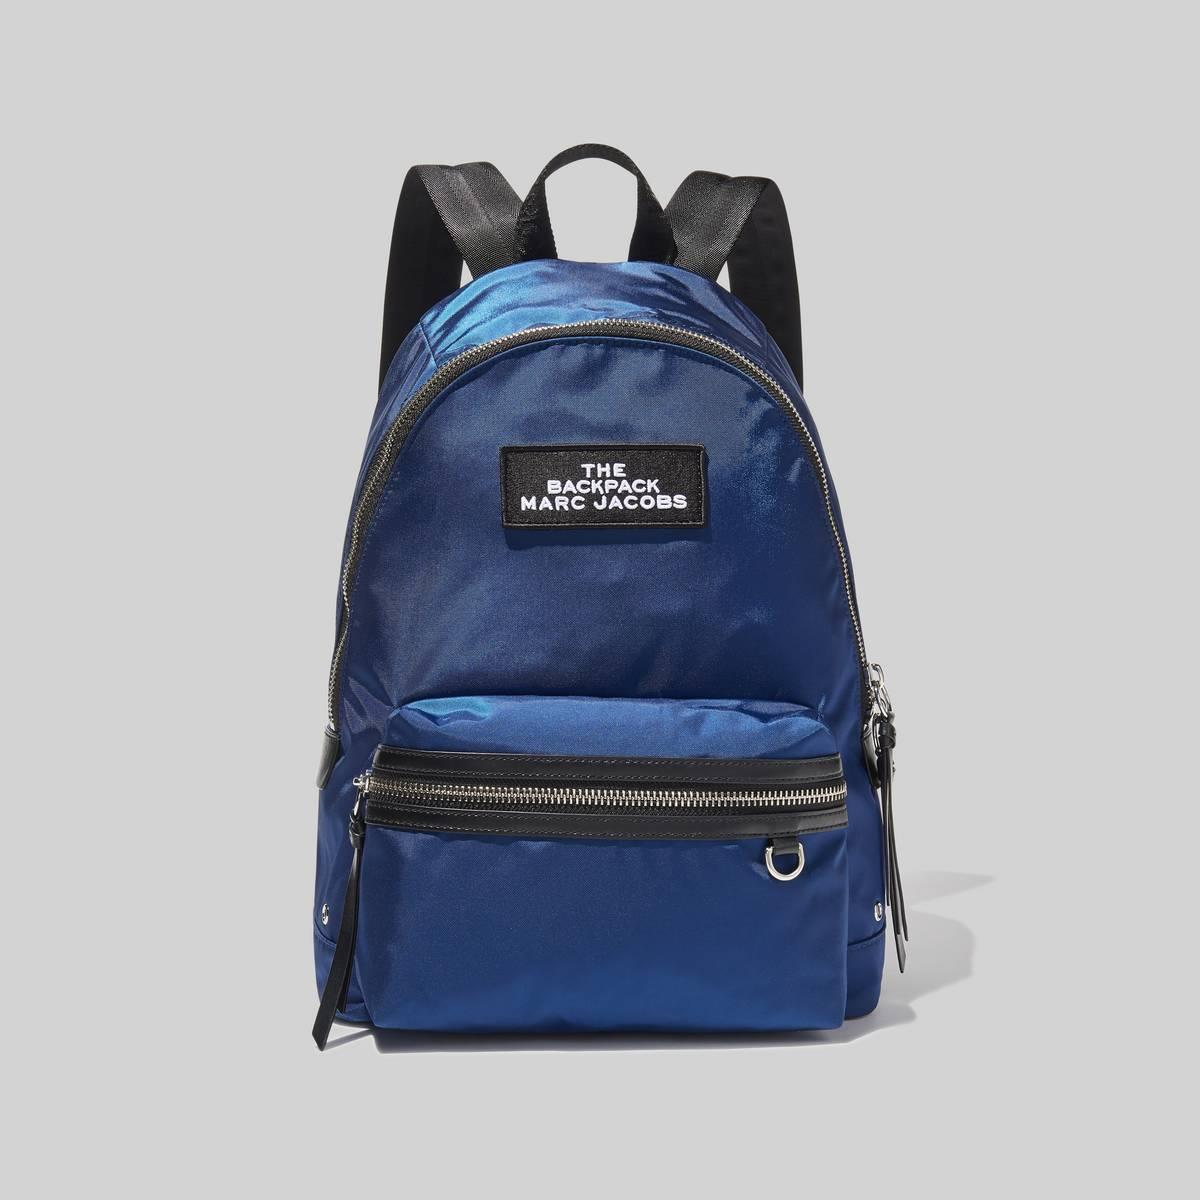 The Large Backpack